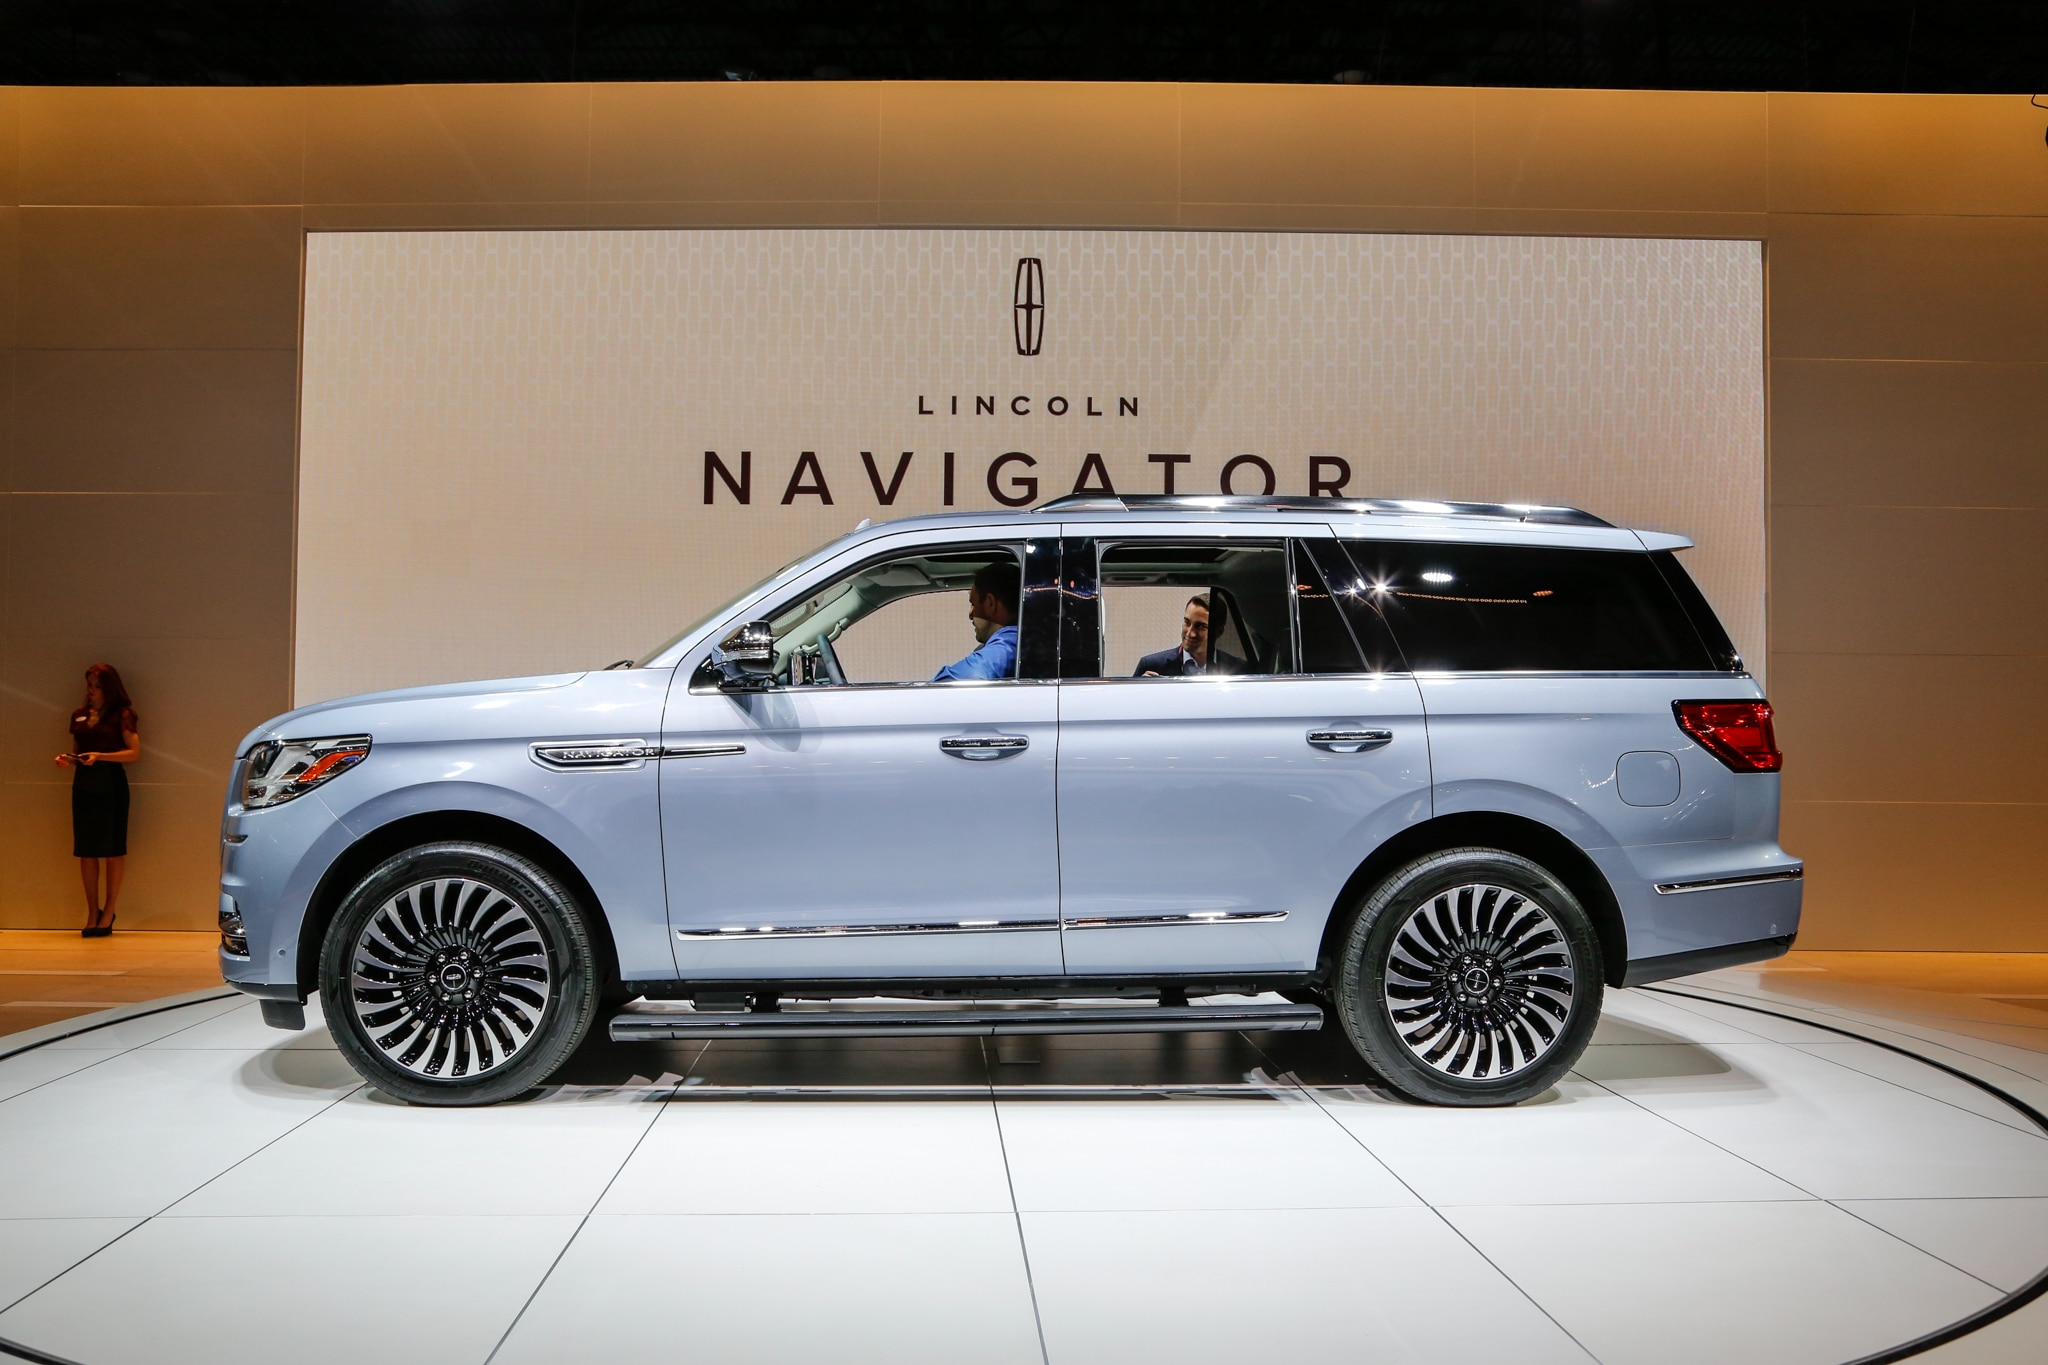 2018 Lincoln Navigator Starts at $73,250, Configurator Now Available | Automobile Magazine